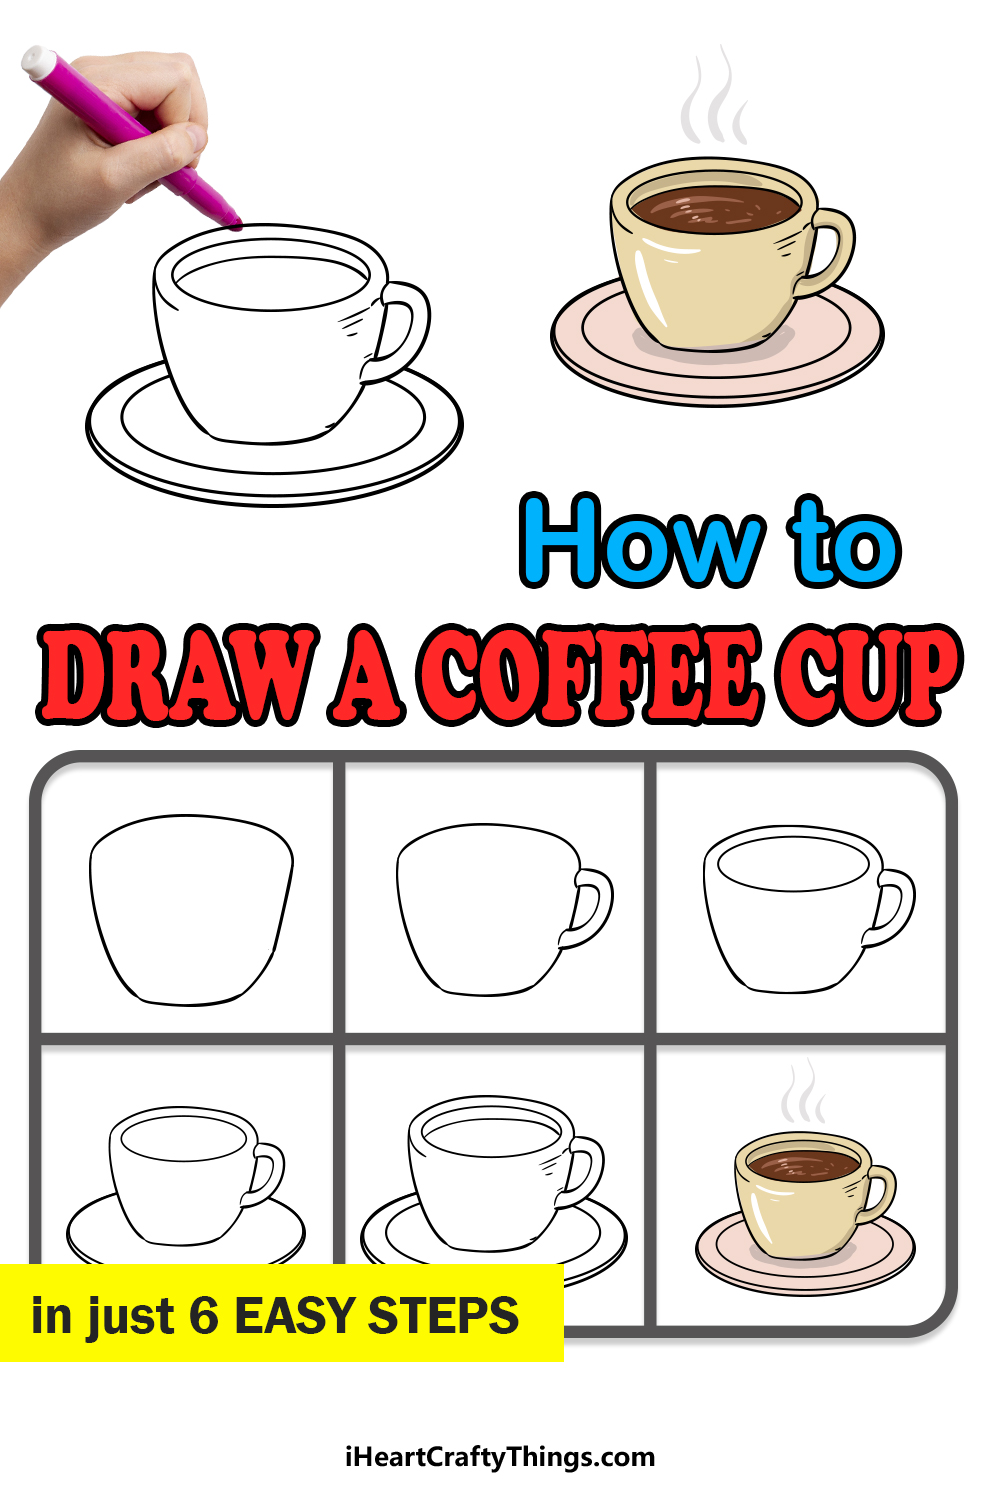 how to draw a coffee cup in 6 easy steps